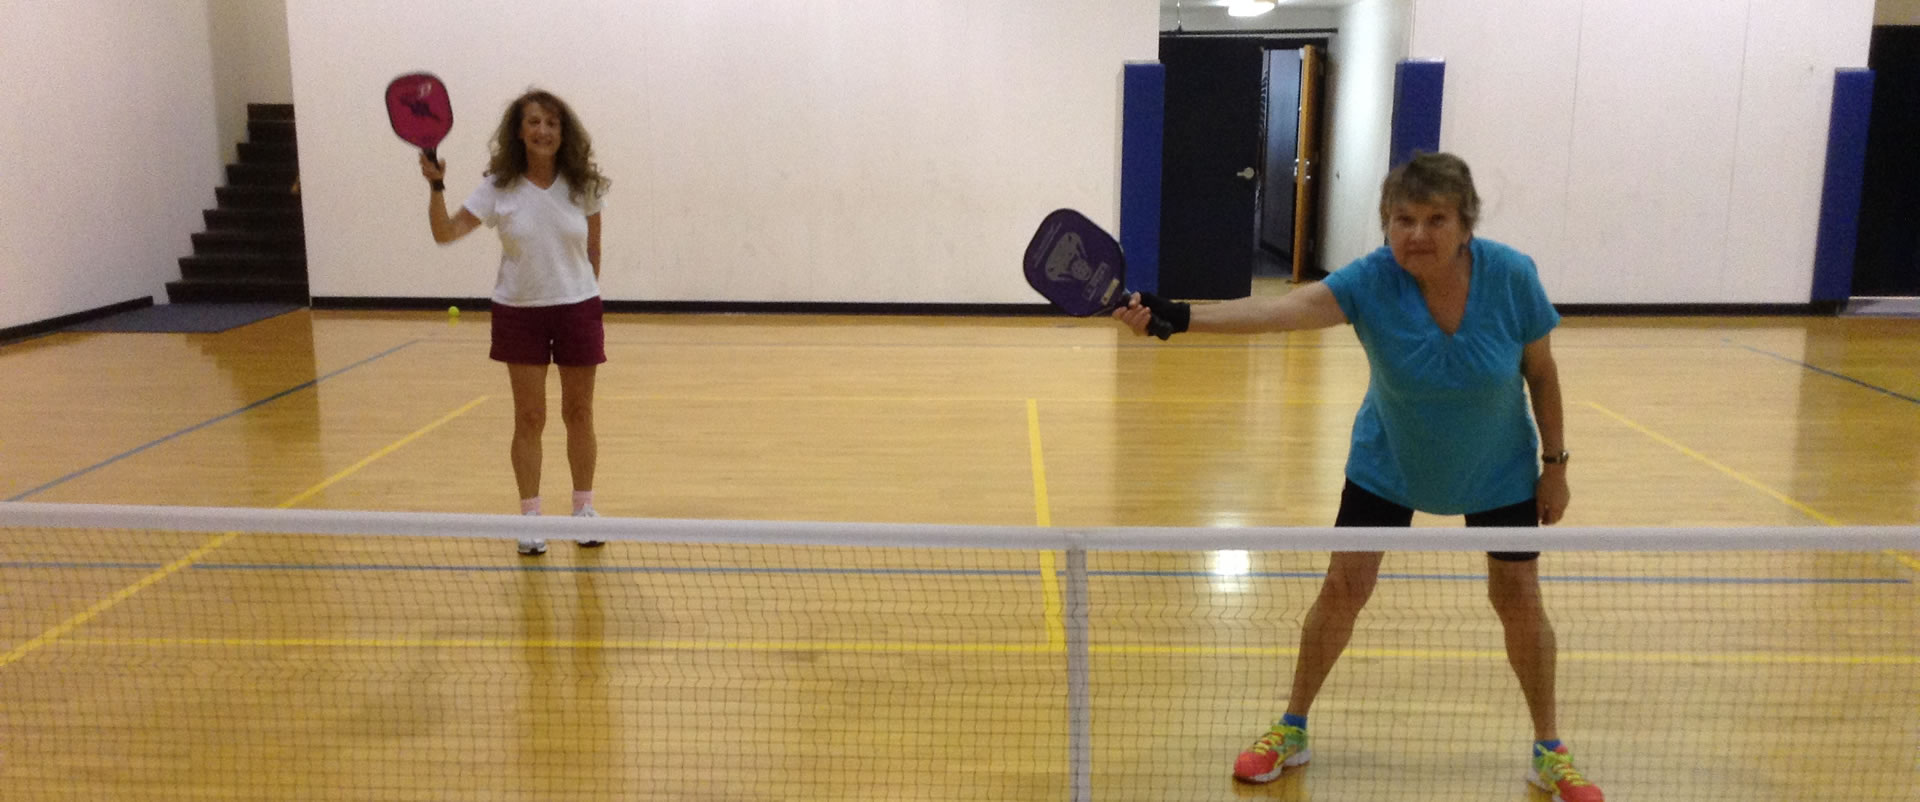 Two women waiting to receive serve while playing pickleball at Madison Turners